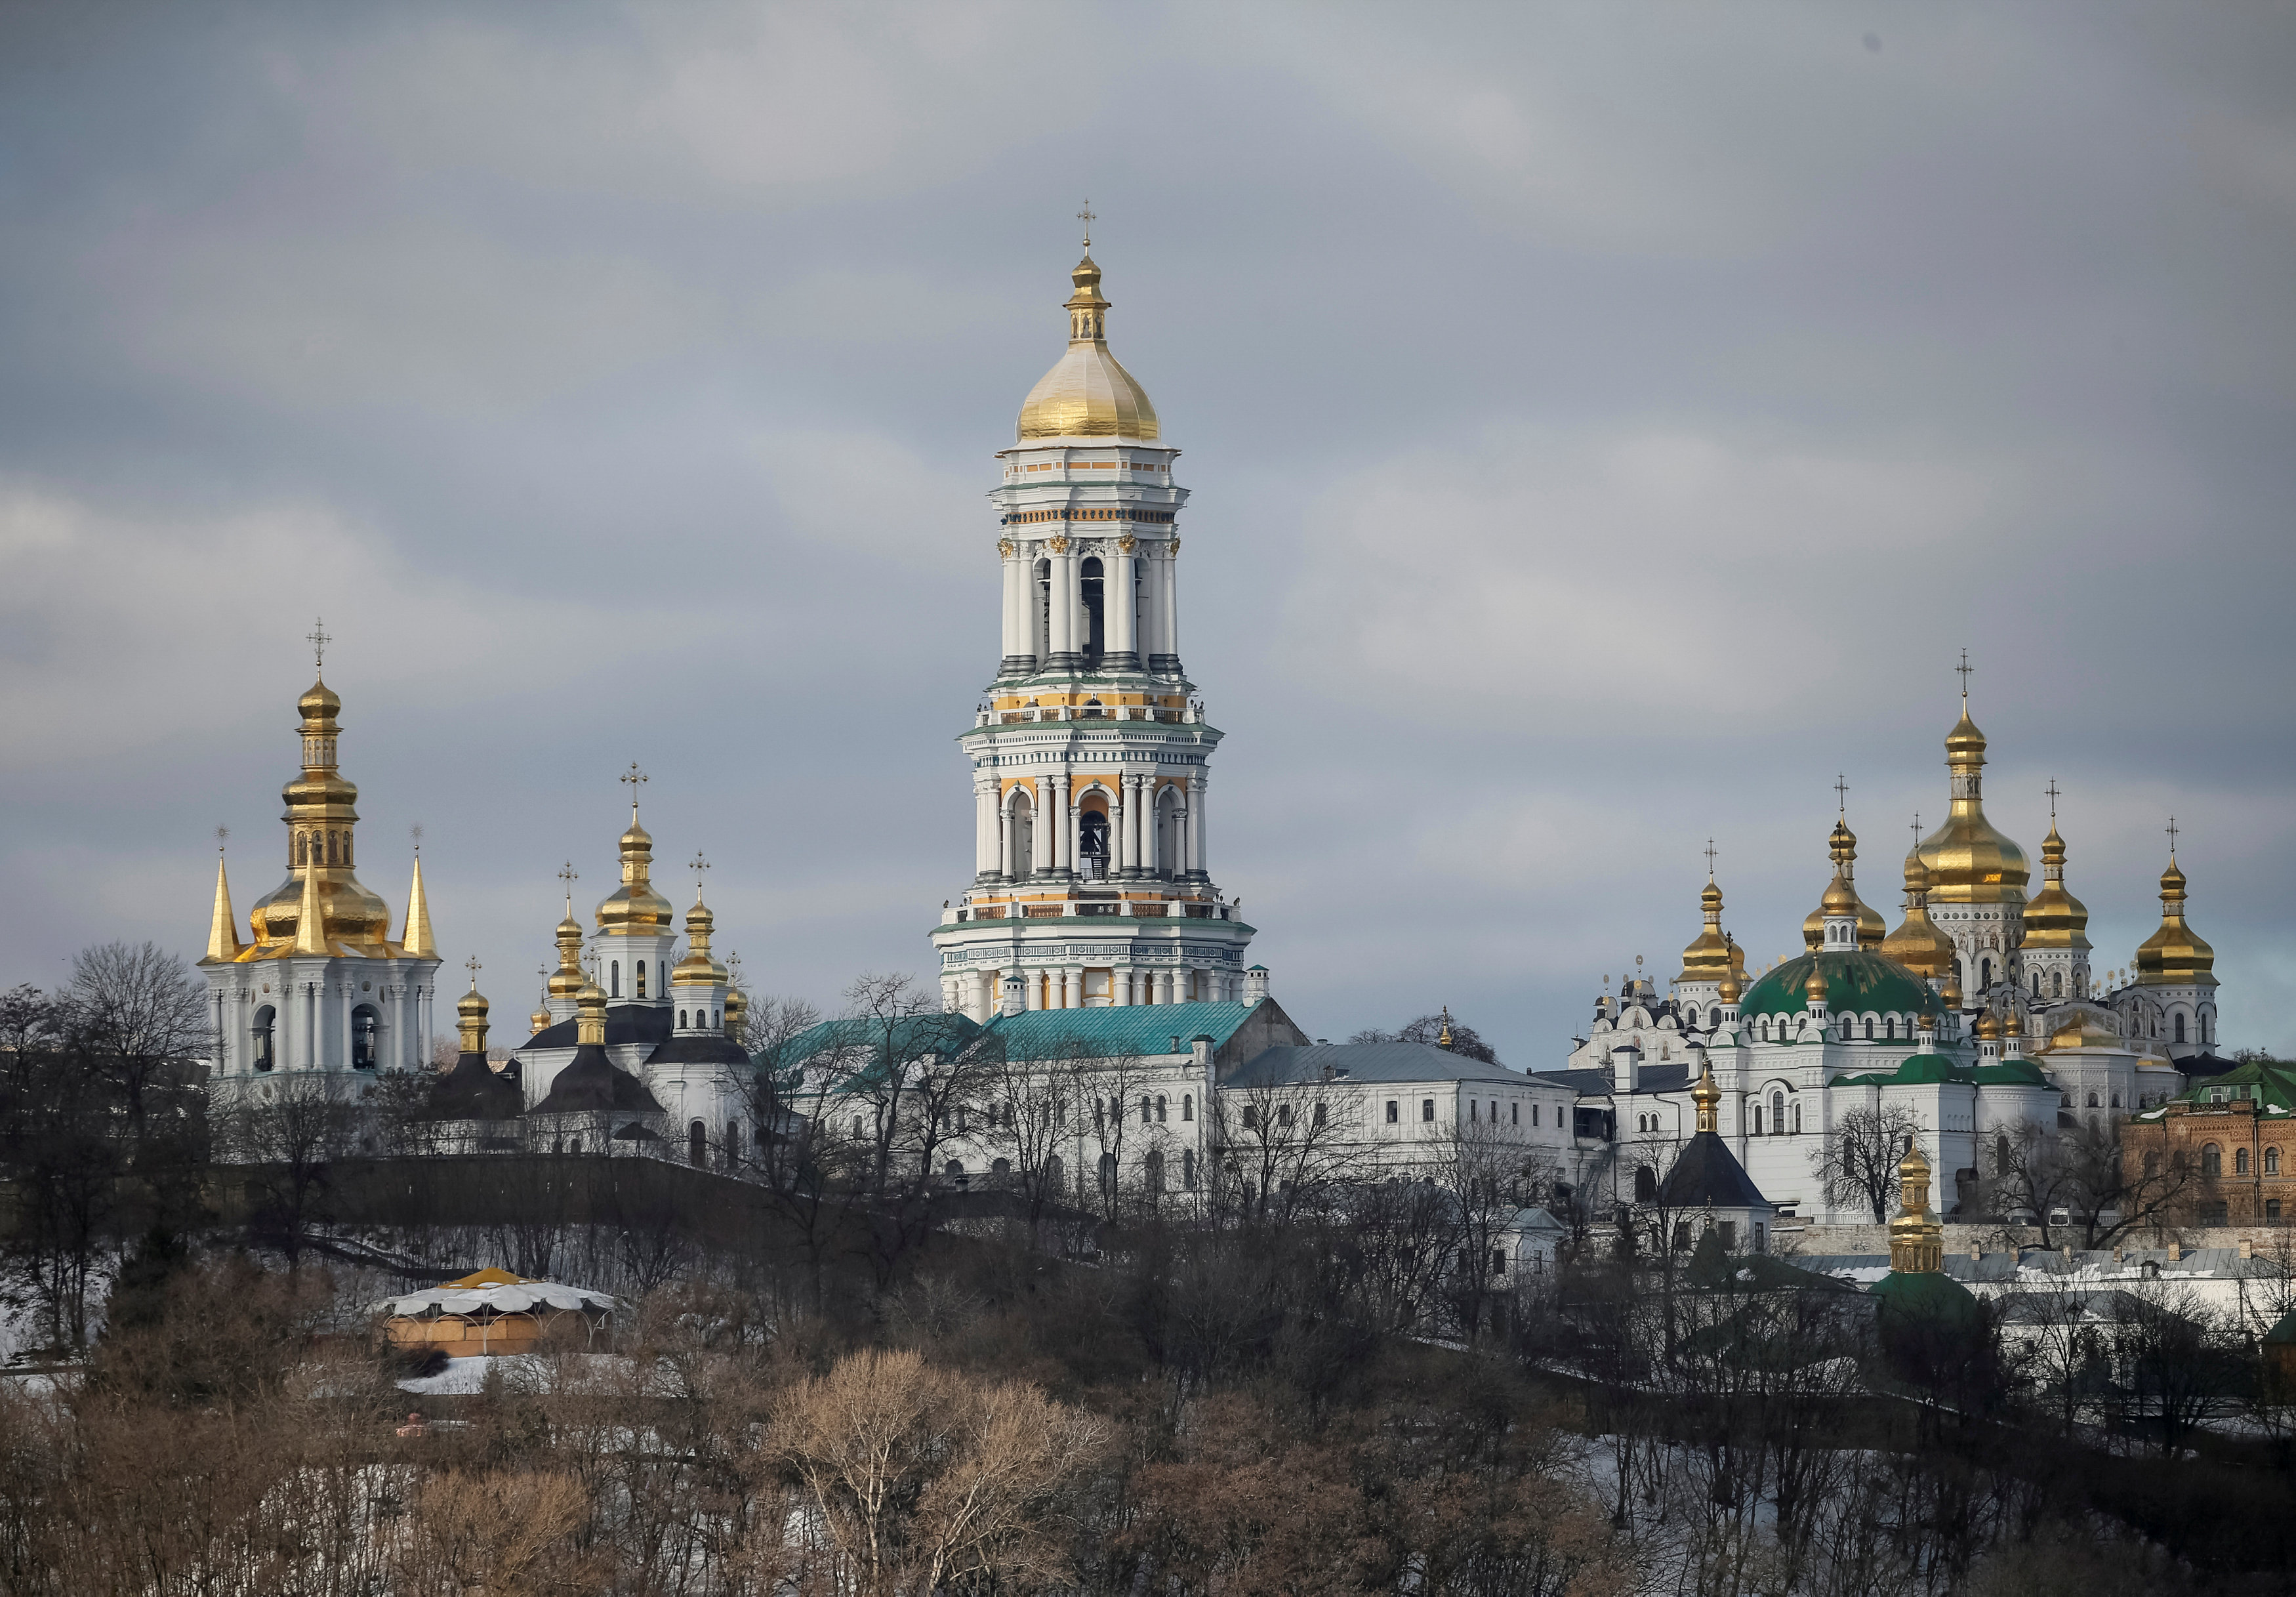 FILE PHOTO: A general view shows a bell tower and domes of the Kiev Pechersk Lavra monastery in Kiev, Ukraine January 22, 2017. REUTERS/Gleb Garanich/File Photo